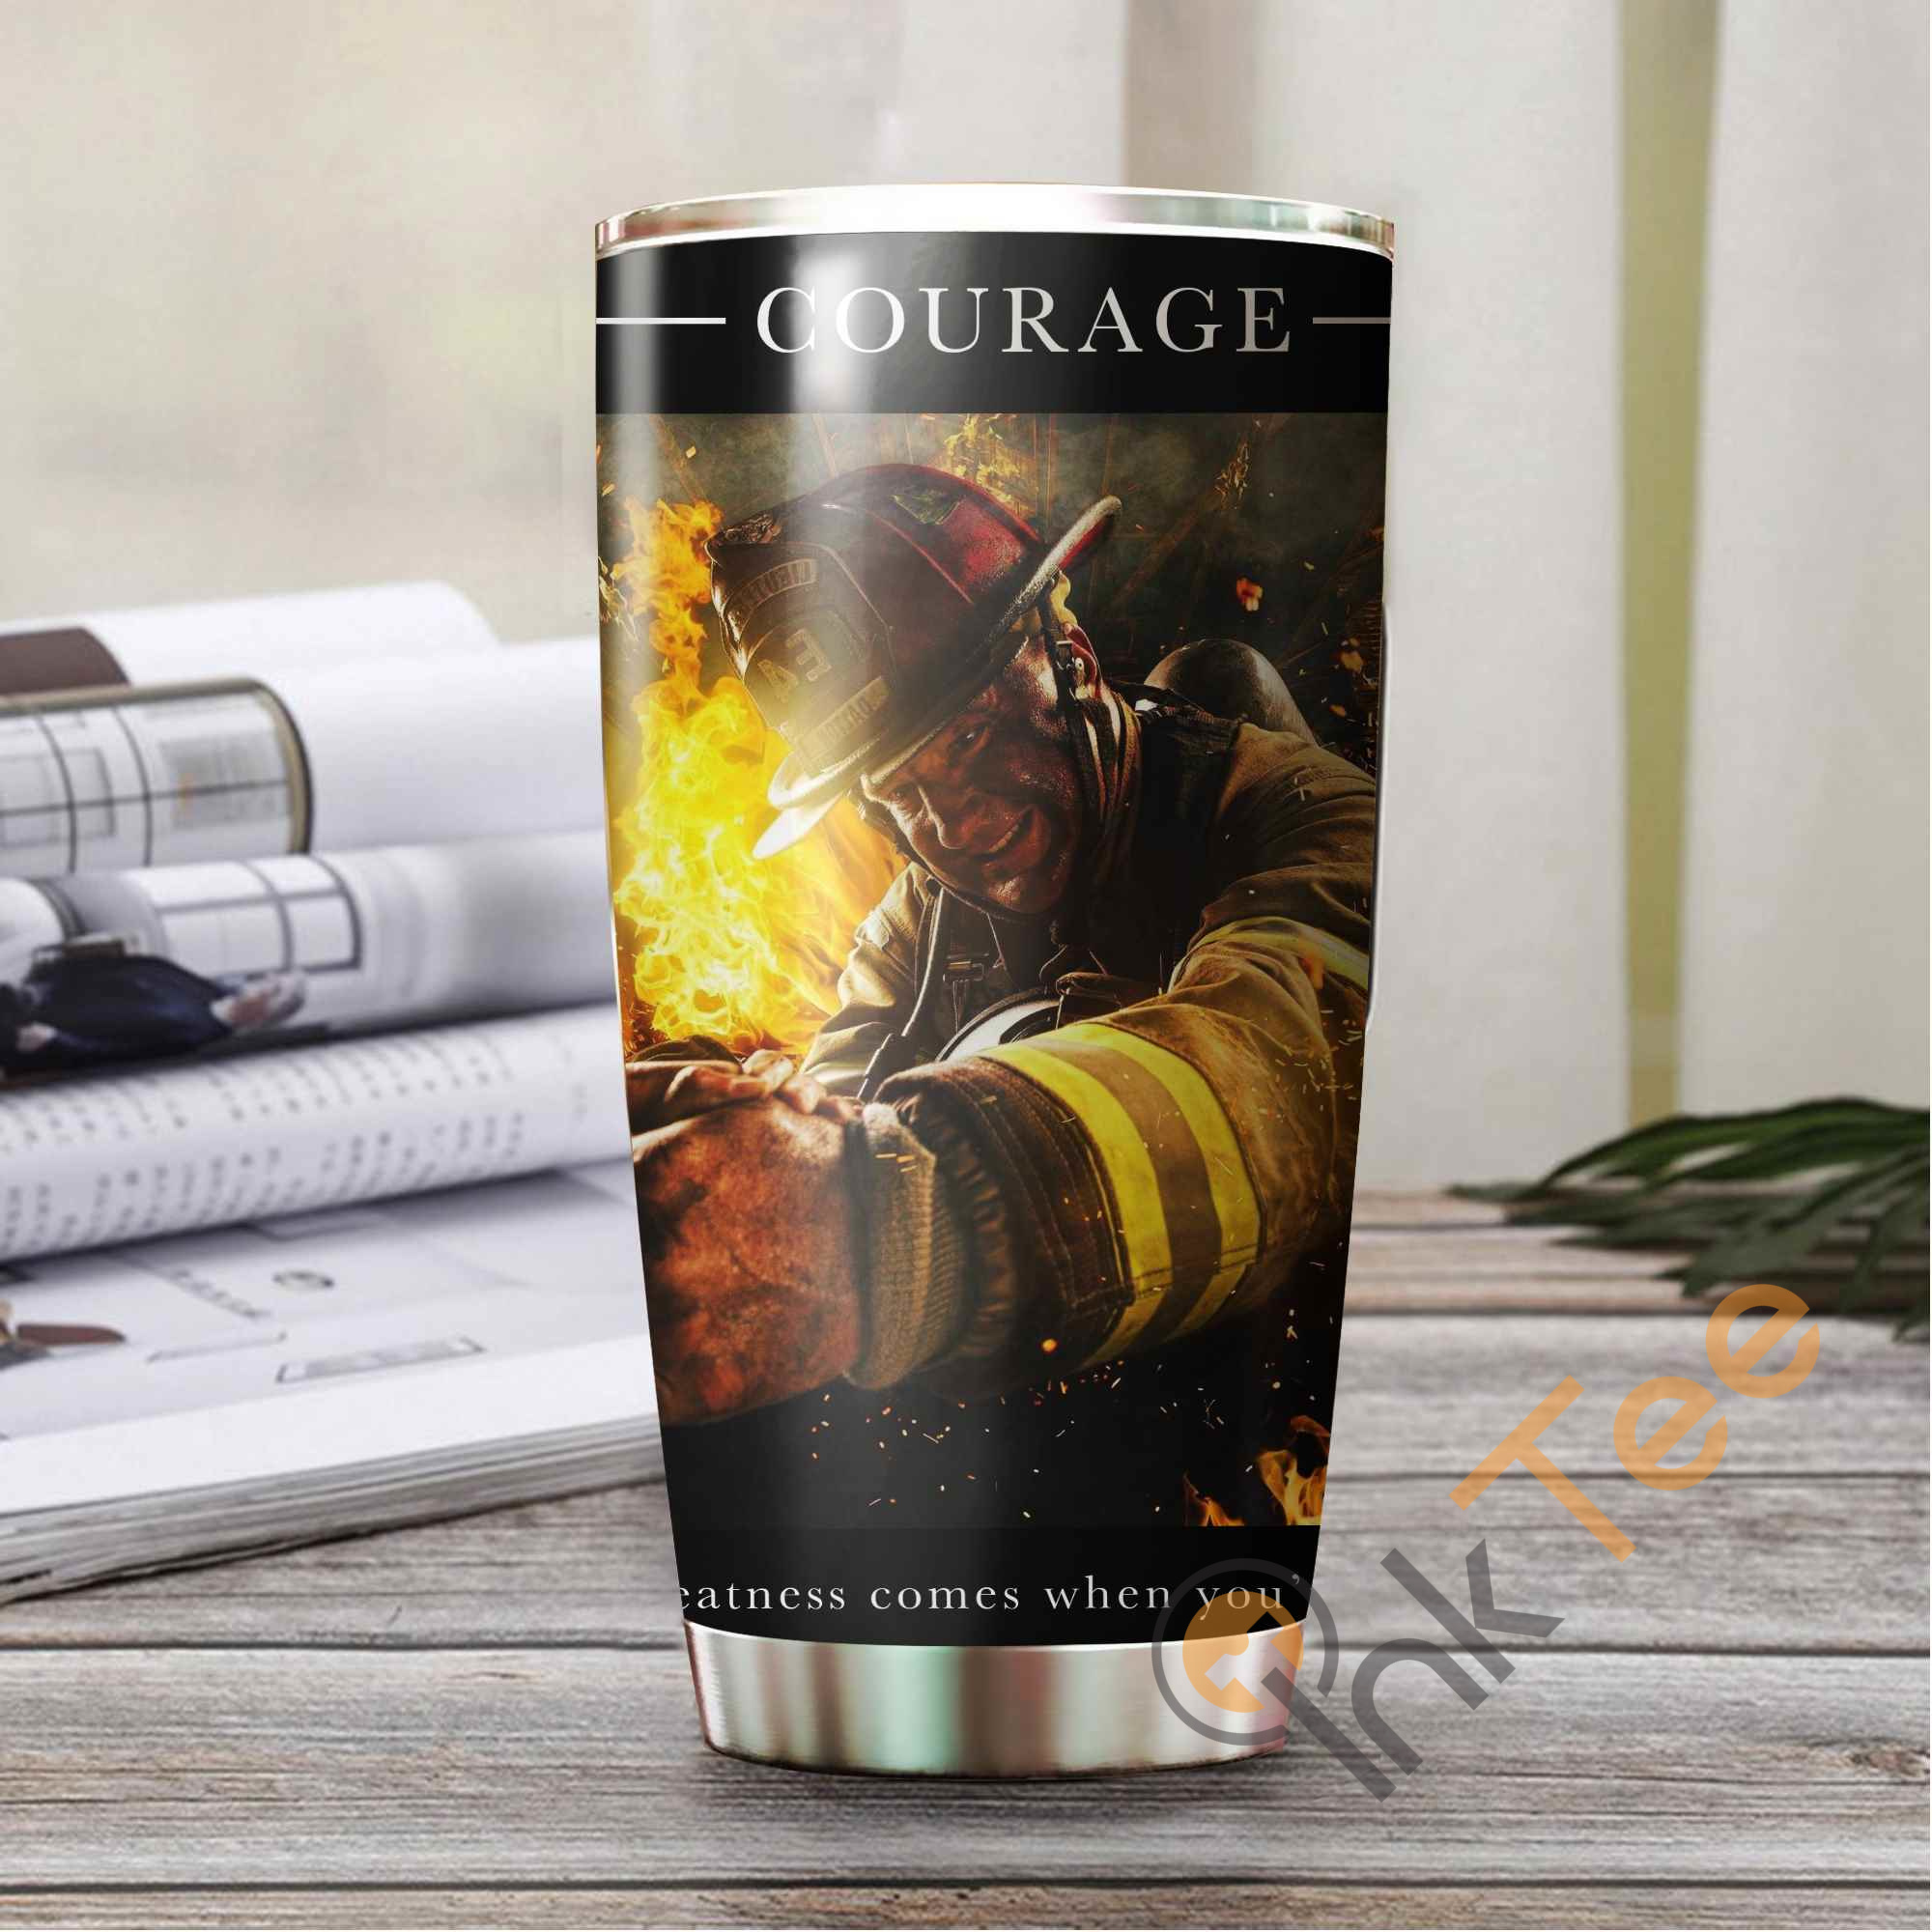 Firefighter's Courage Amazon Best Seller Sku 3745 Stainless Steel Tumbler